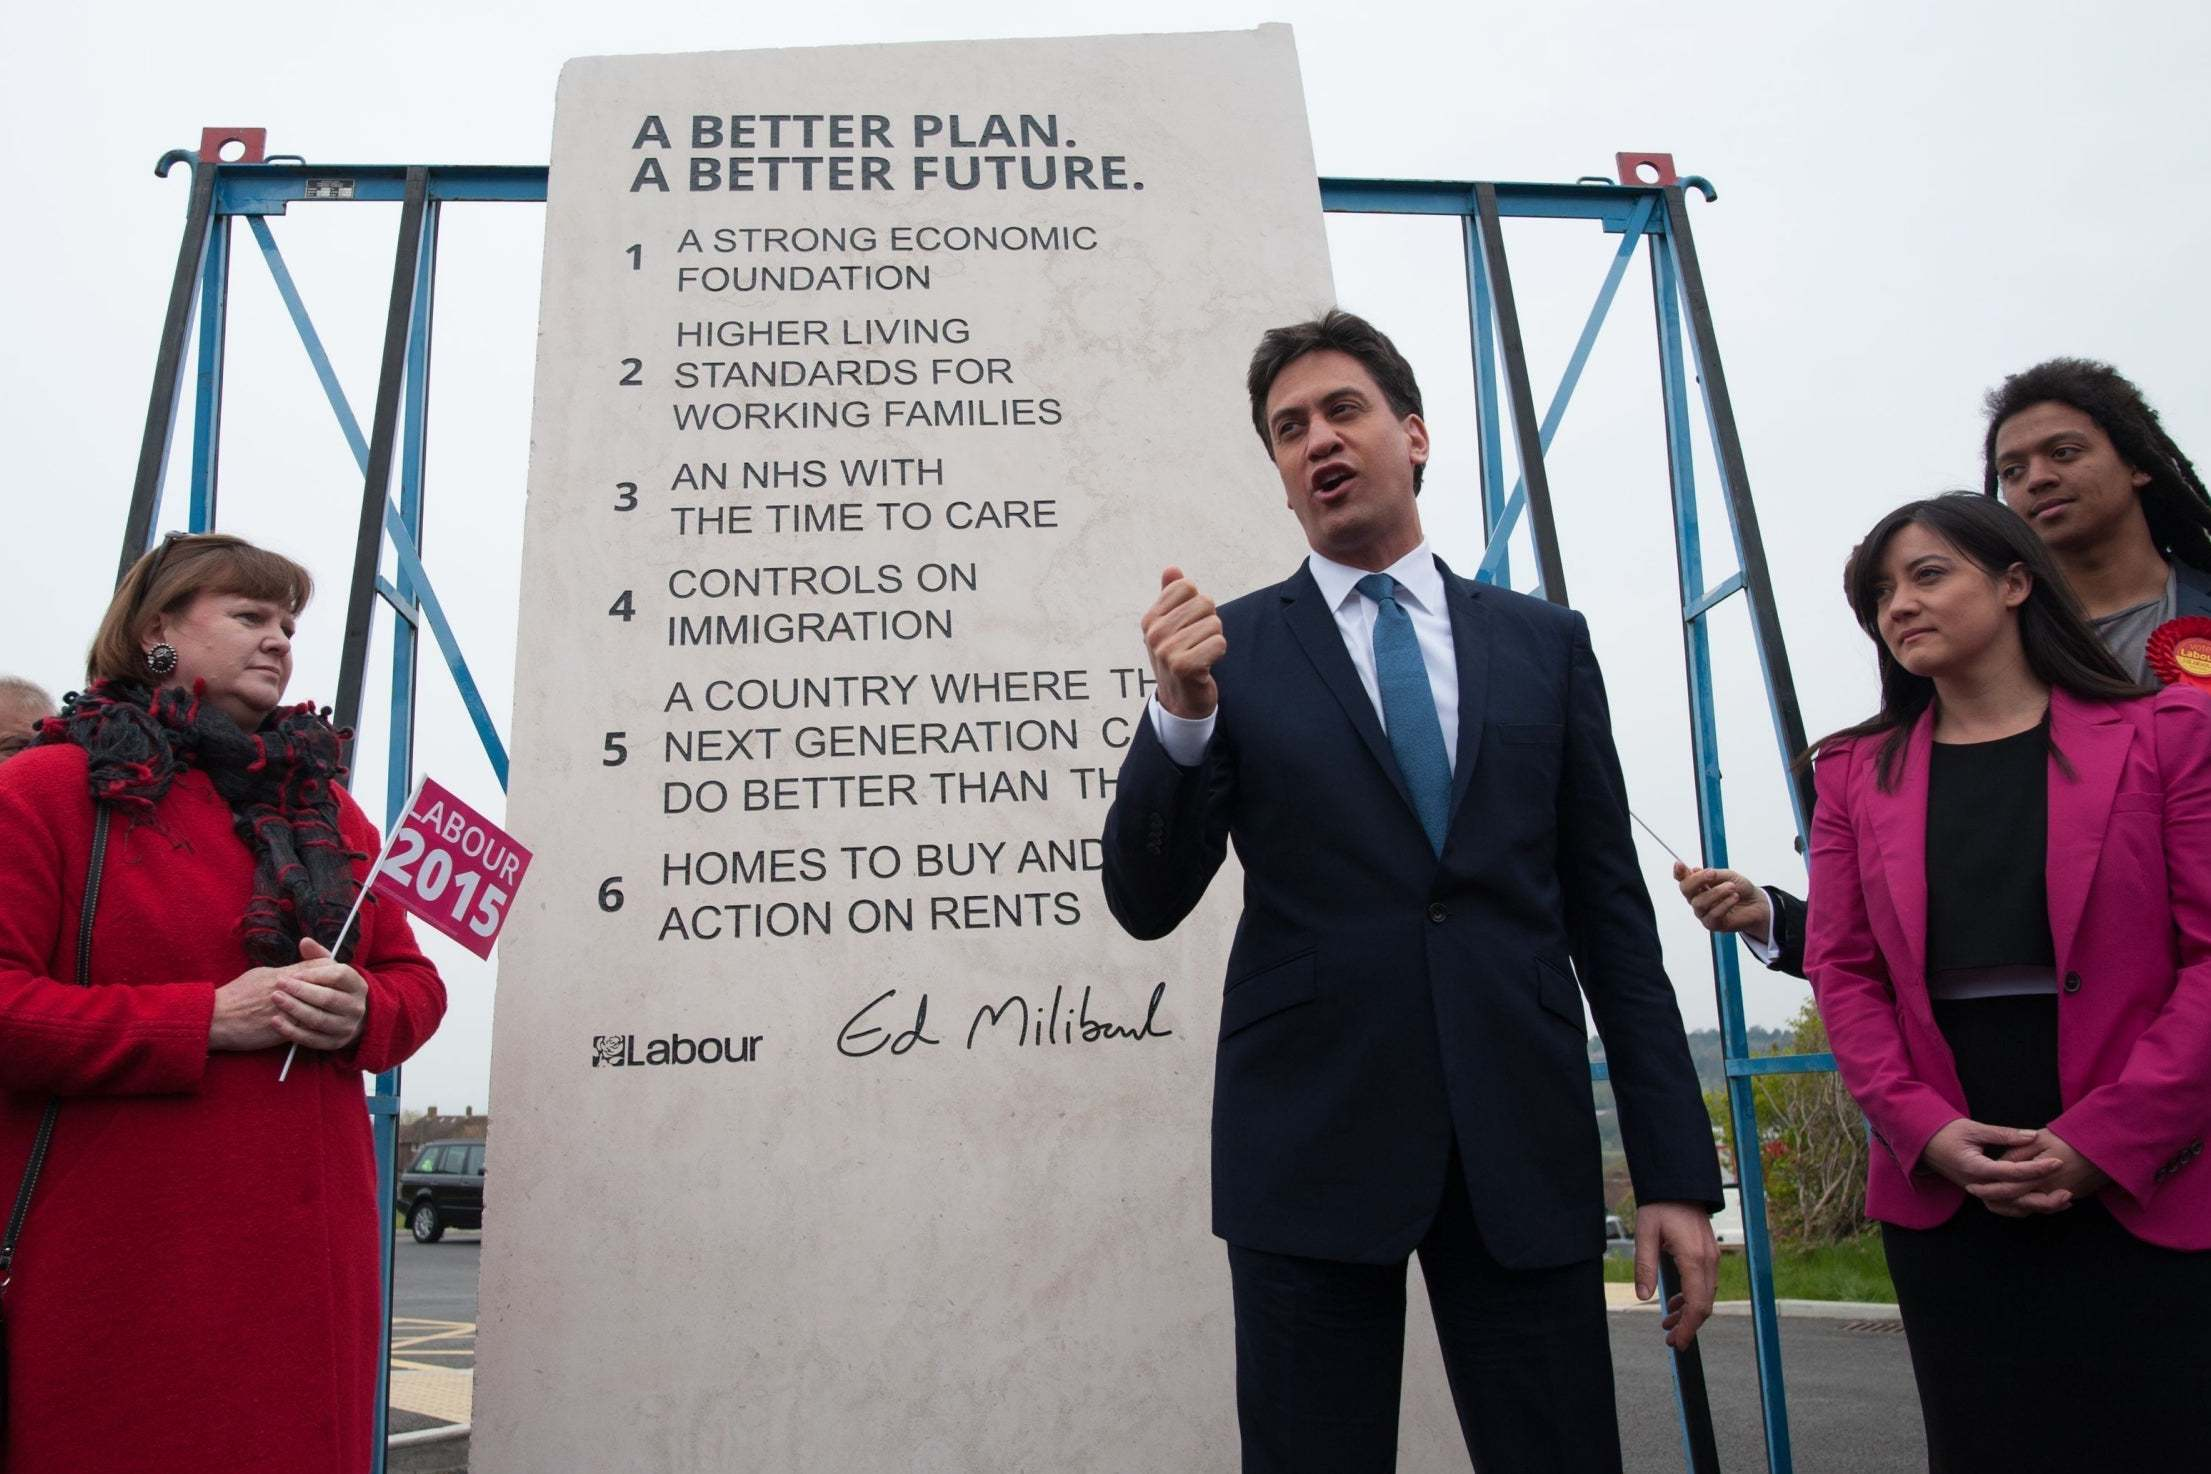 How many of Ed Miliband's policies have the Conservatives now enacted?